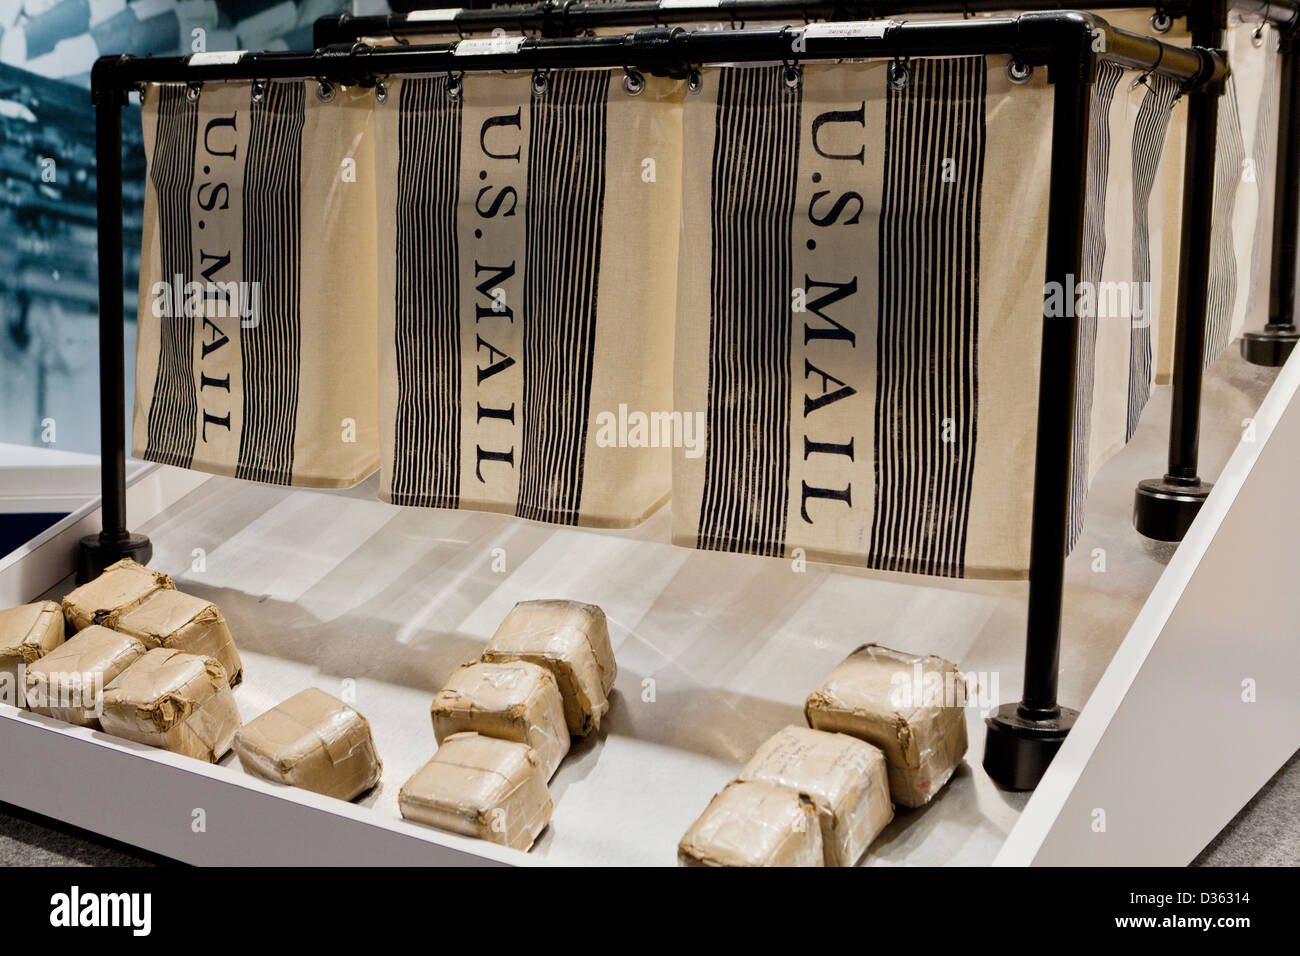 US Mail throwing bins - Stock Image